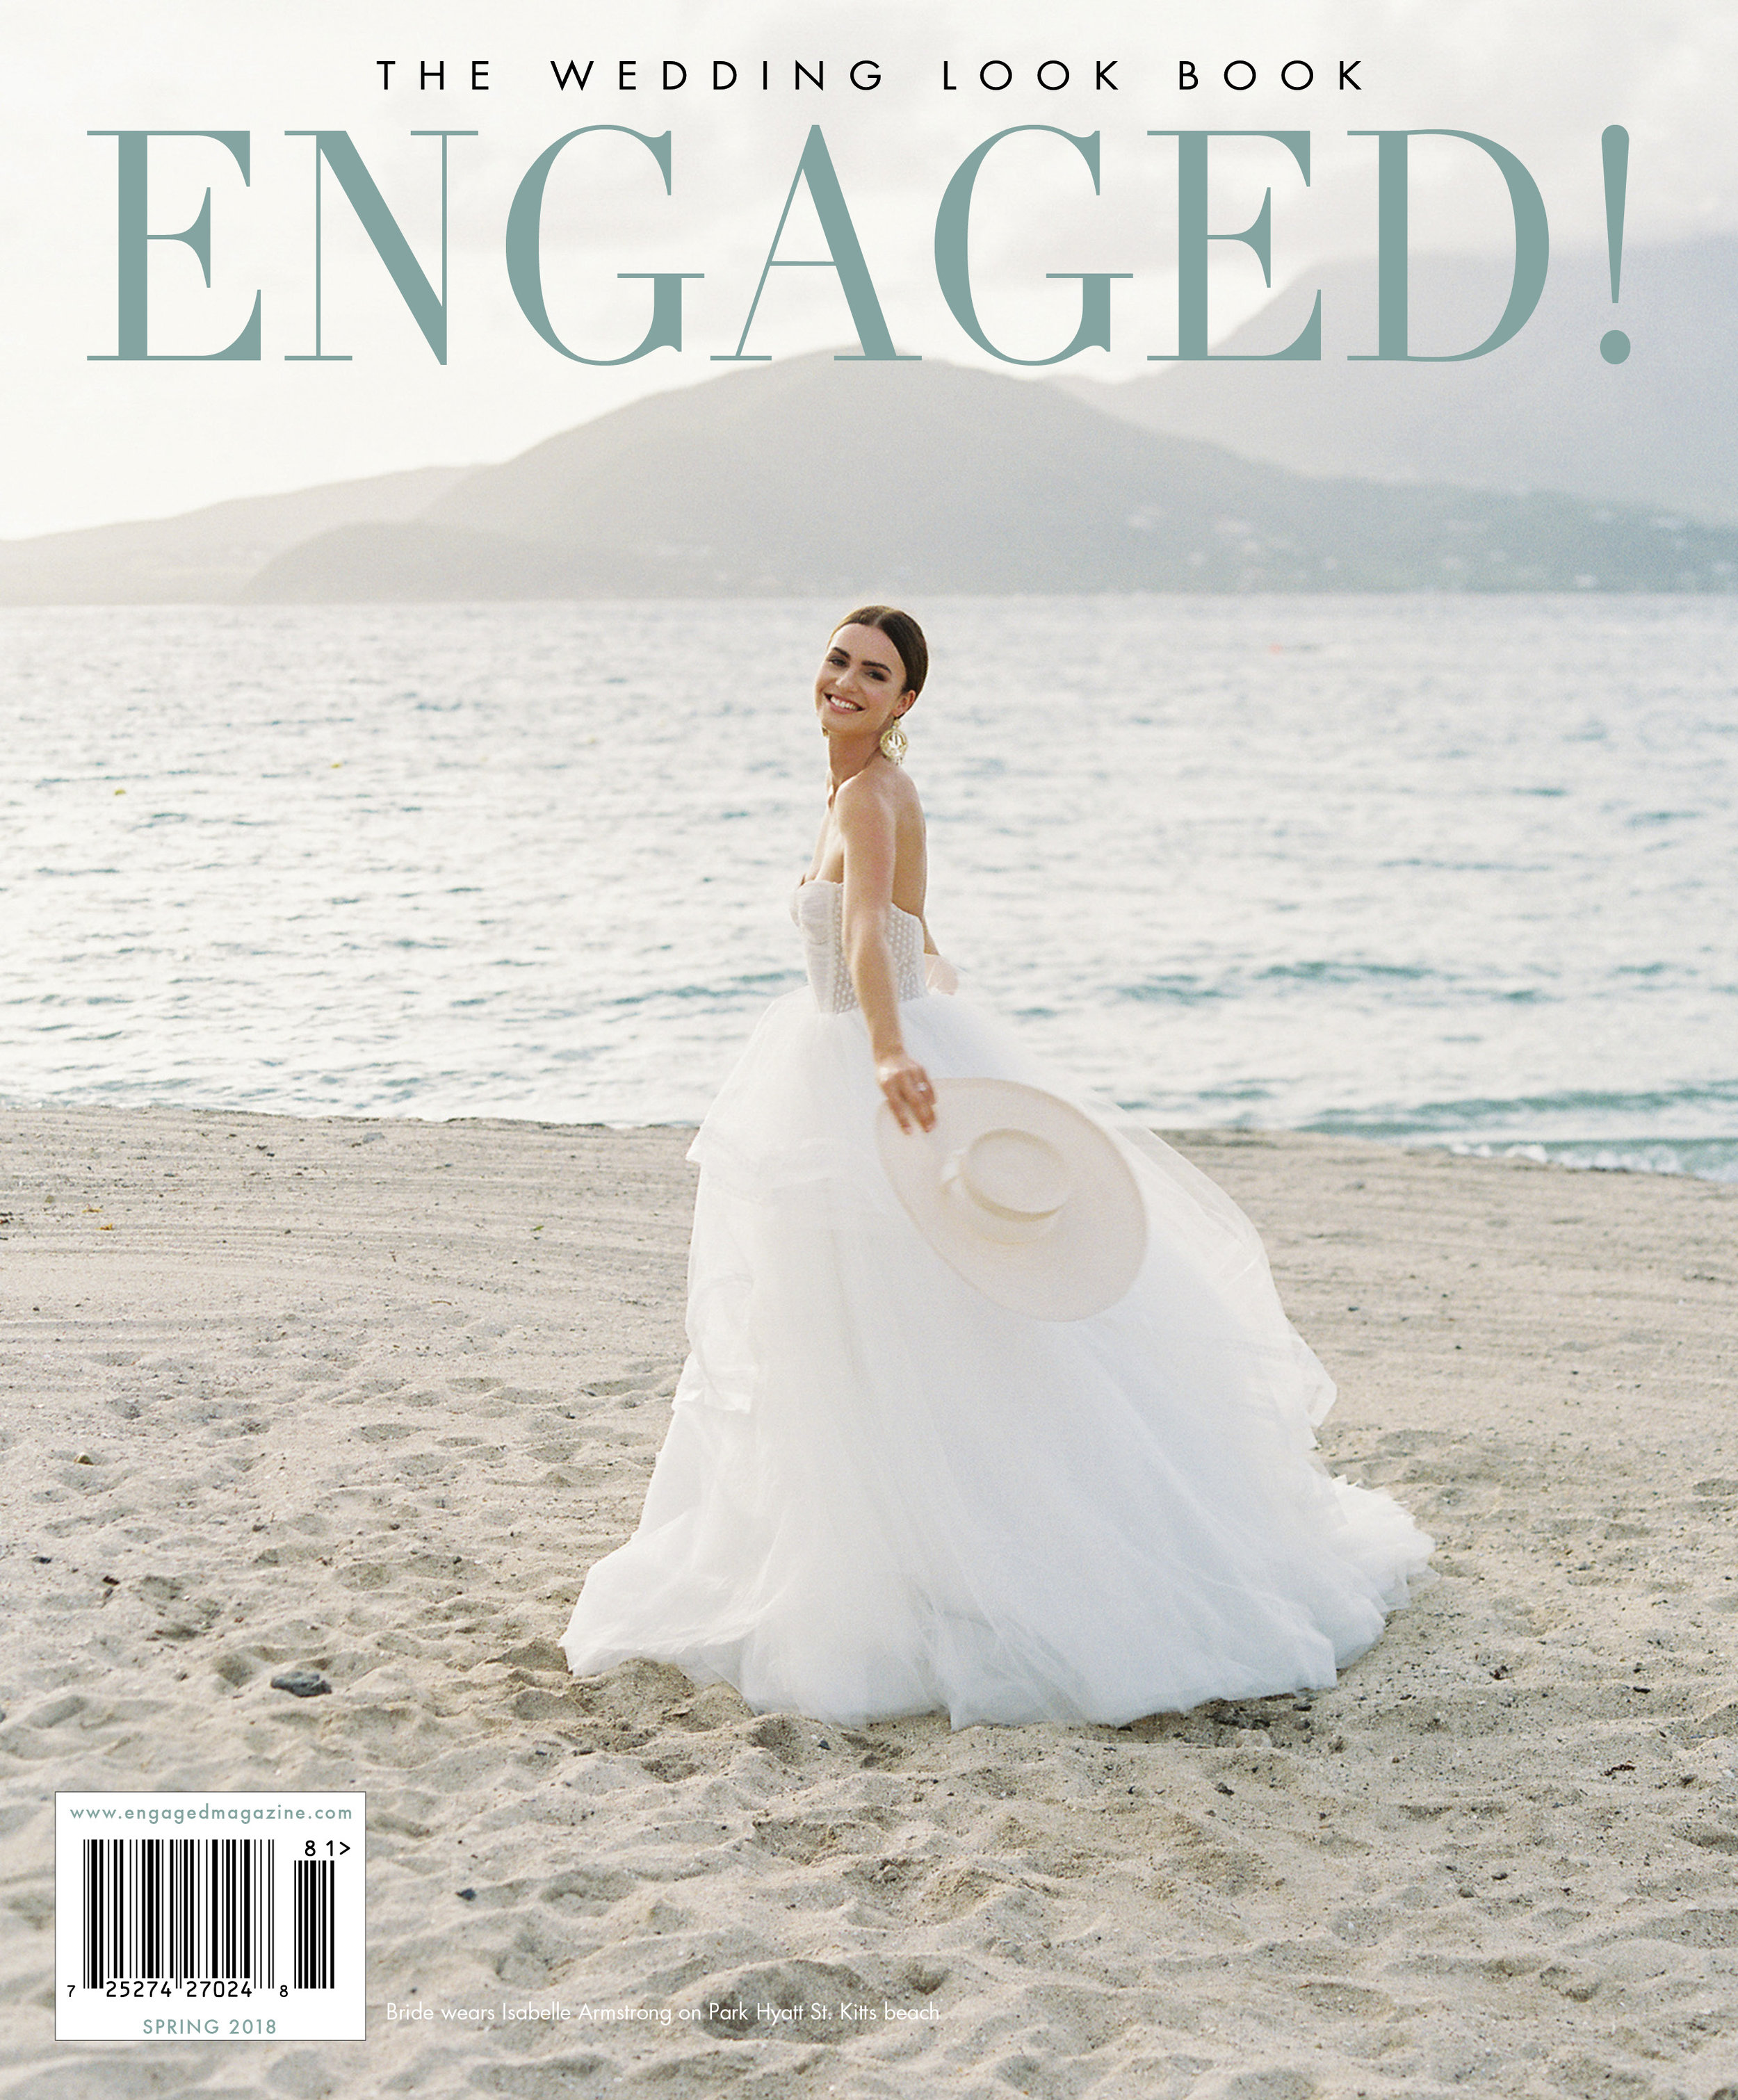 Engaged! ~ Spring 2018 Cover